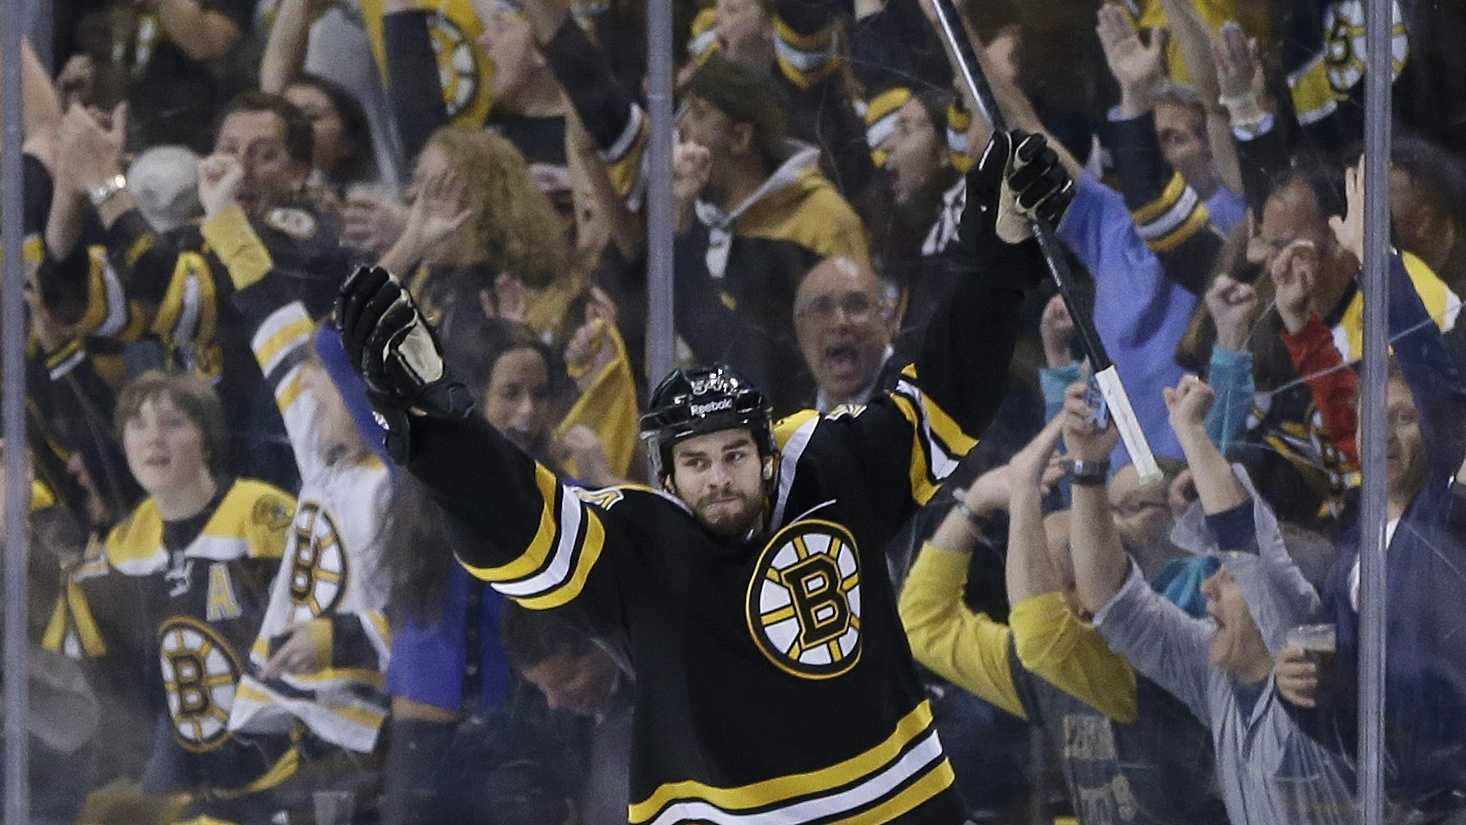 Boston Bruins defenseman Adam McQuaid  celebrates his goal against the Pittsburgh Penguins during the third period of Game 4 in the Eastern Conference finals of the NHL hockey Stanley Cup playoffs, in Boston on Friday, June 7, 2013.